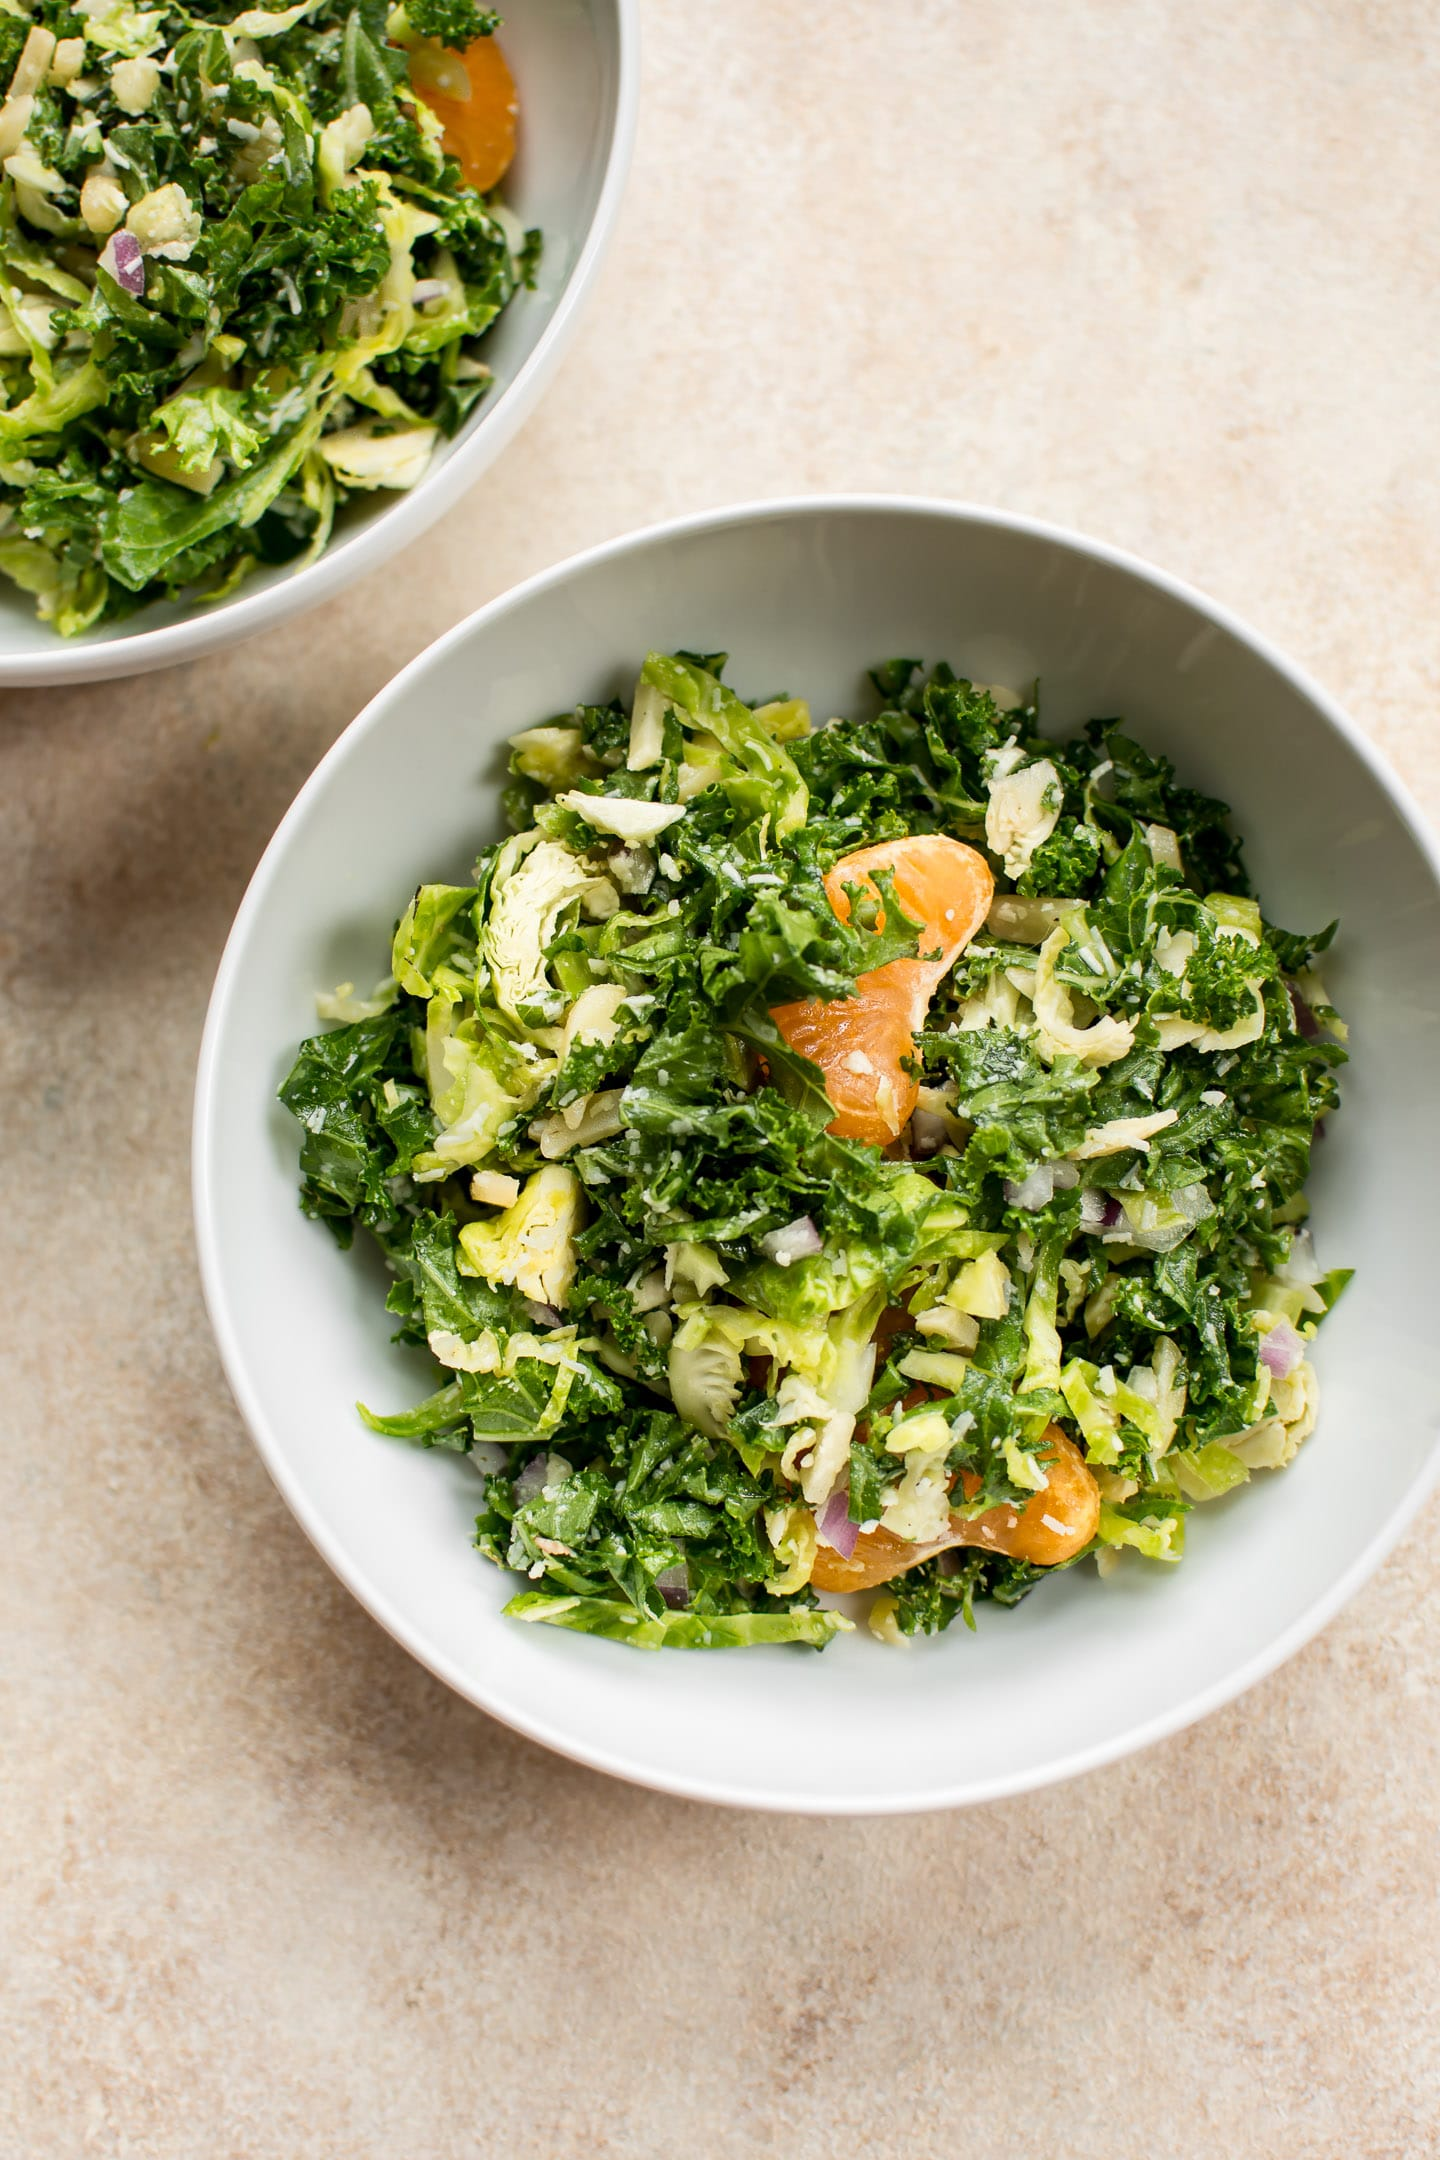 Shredded Kale And Brussels Sprouts Salad Recipe Salt